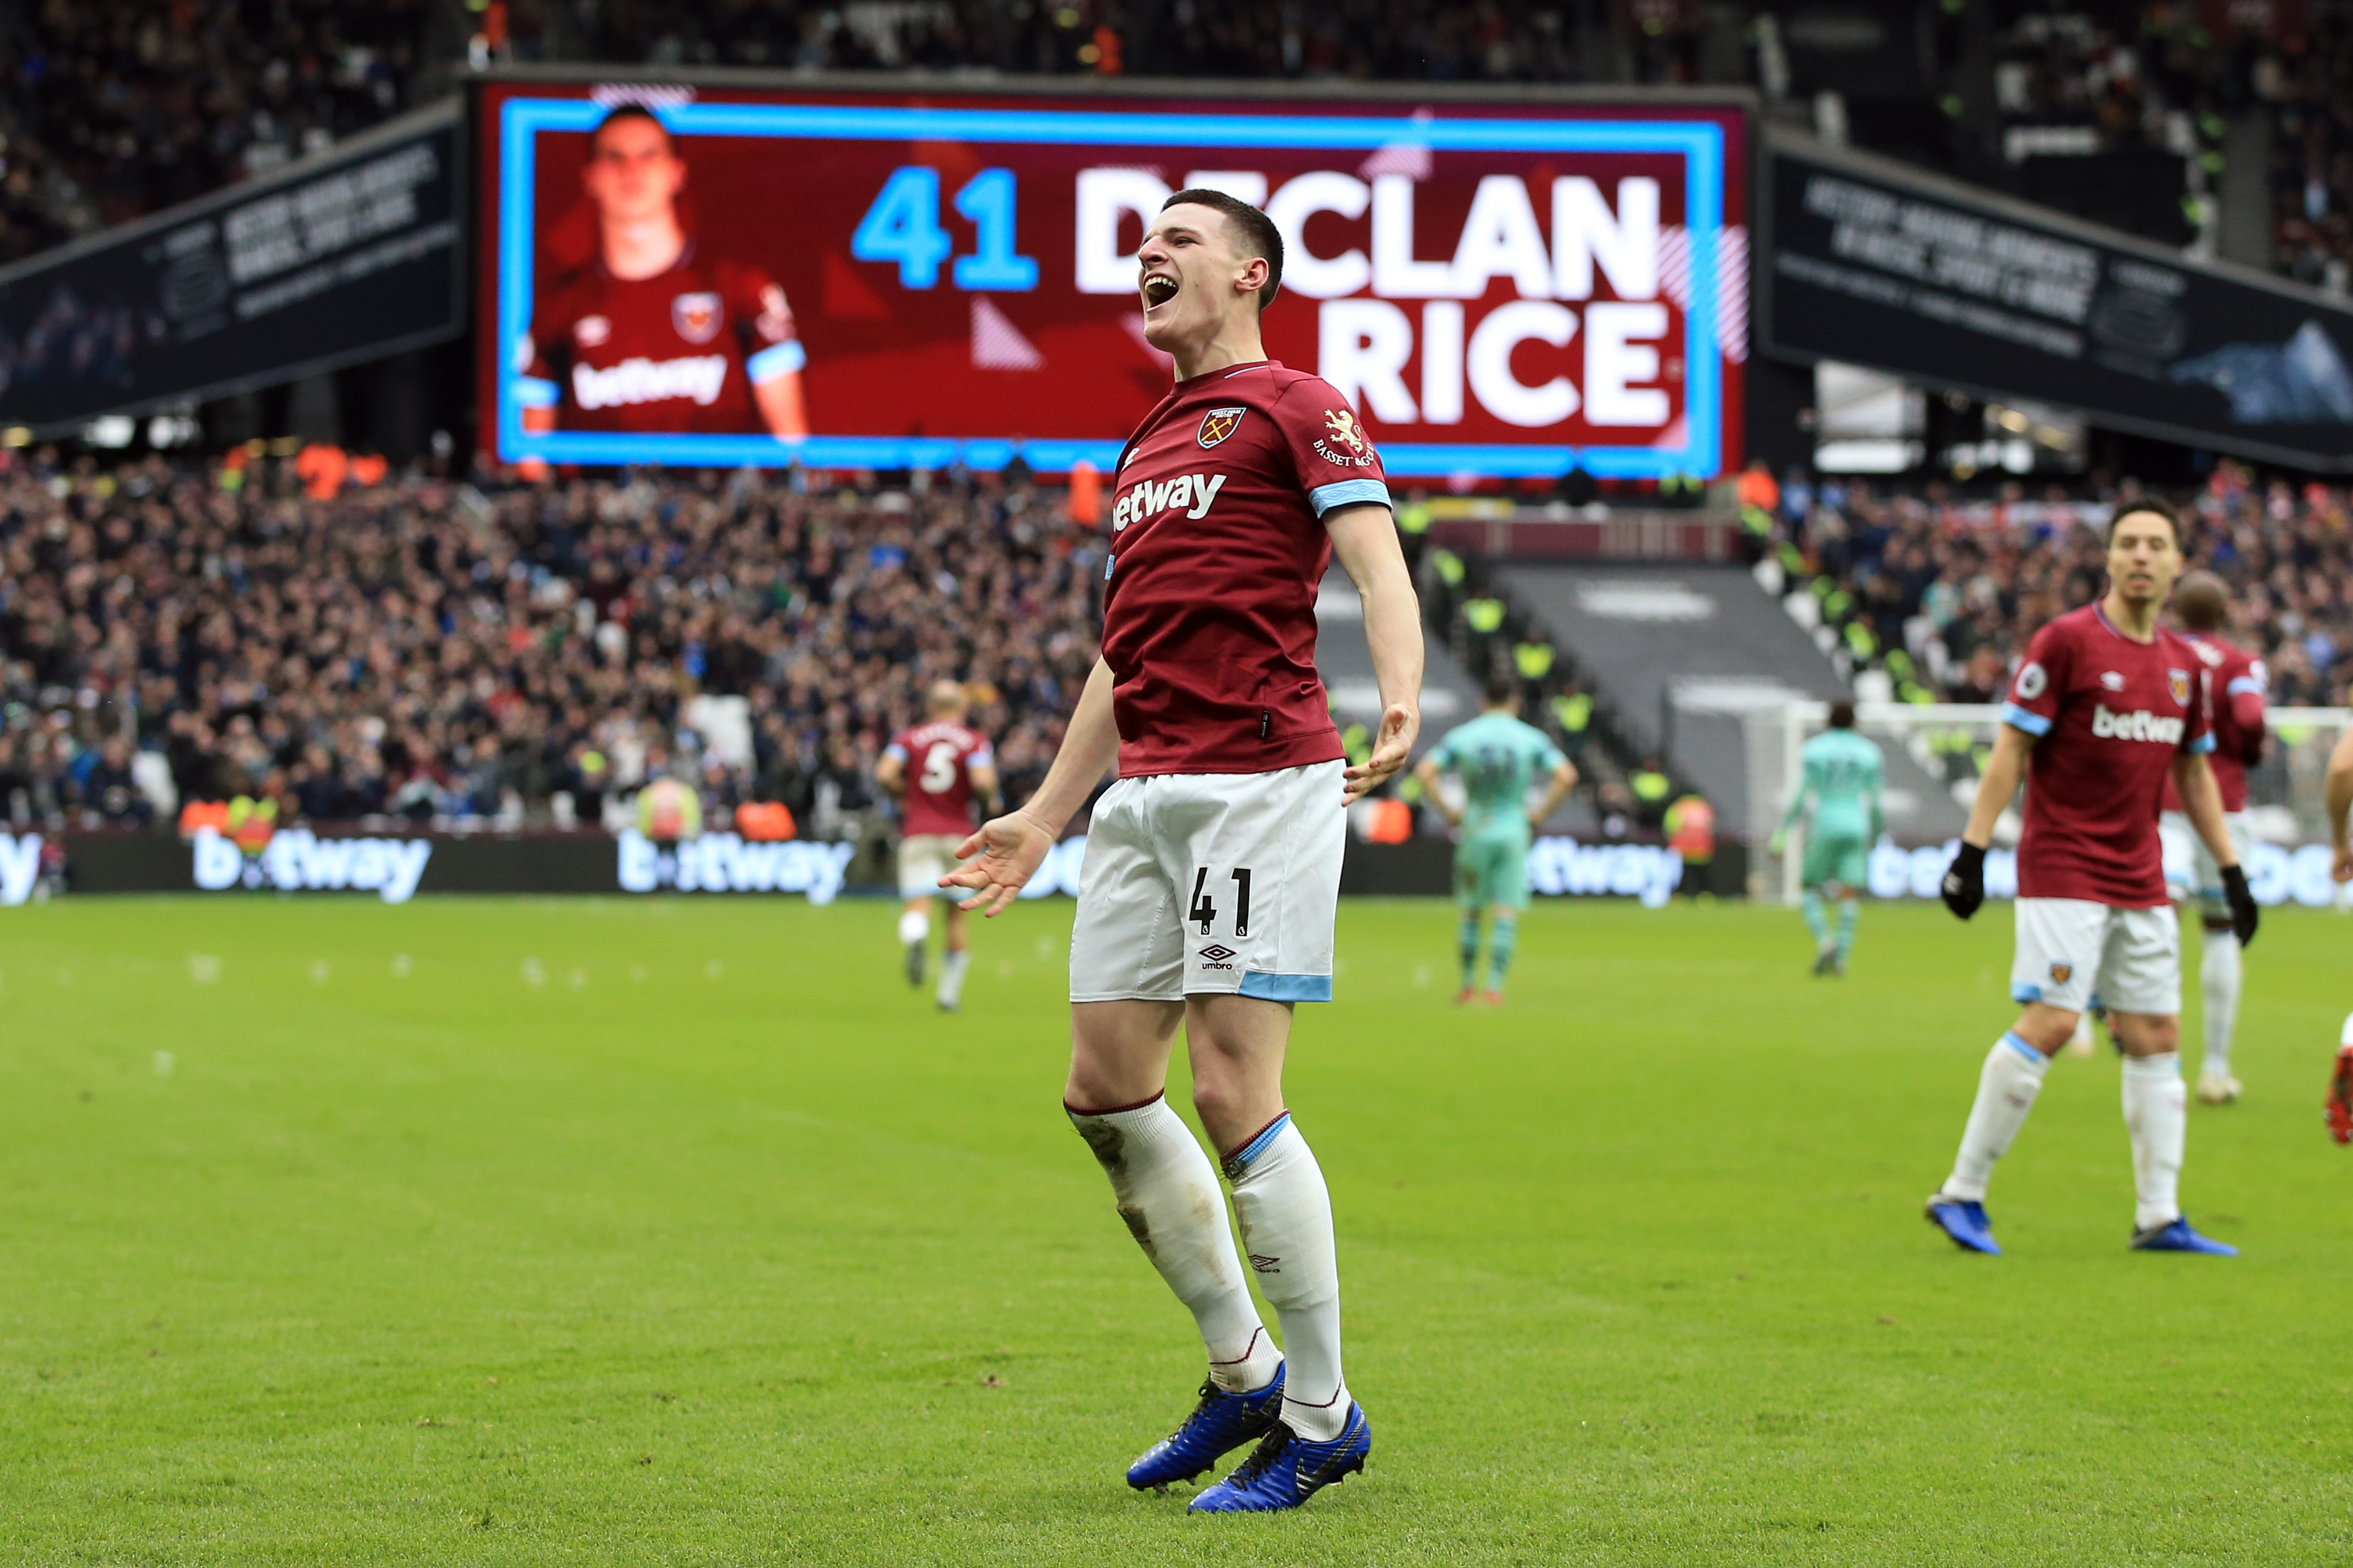 West Ham United slap £80m price tag on Declan Rice who is seen in the picture